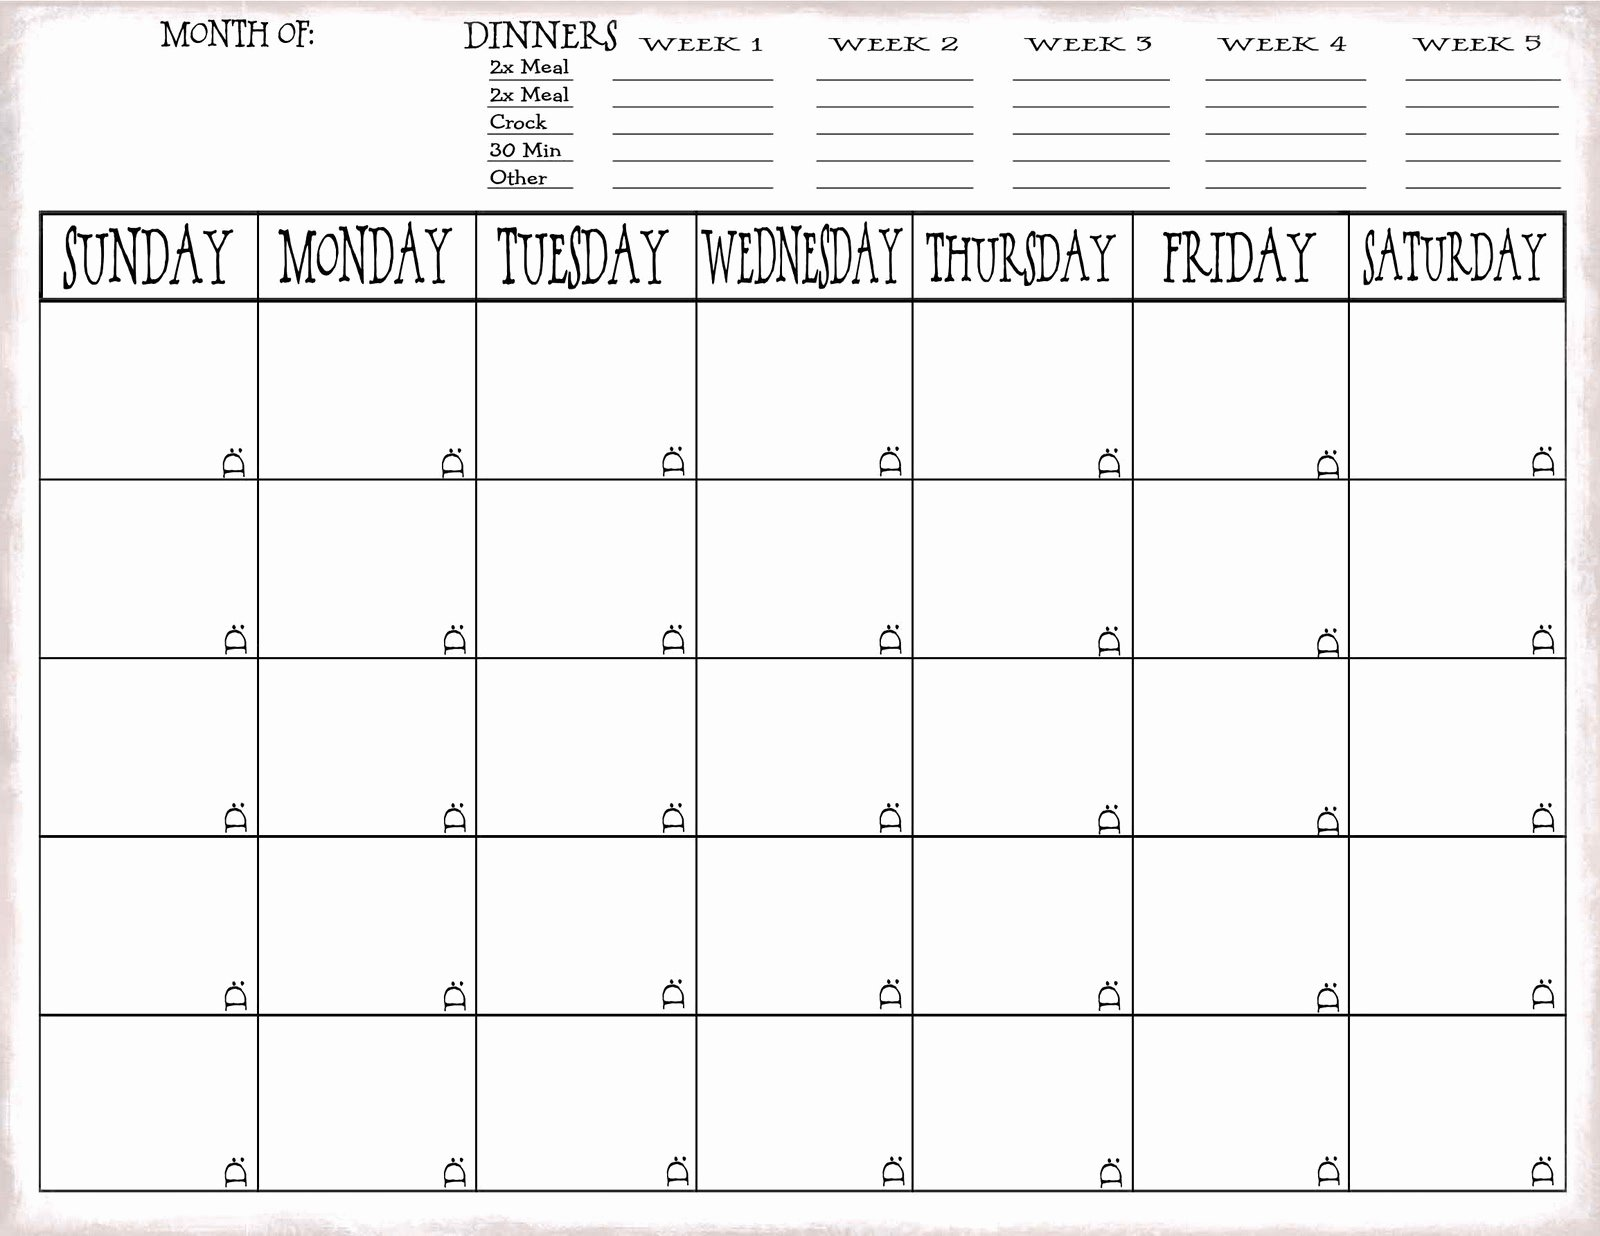 Meal Plan Calendar Template Unique Just Sweet and Simple More On Meal Planning